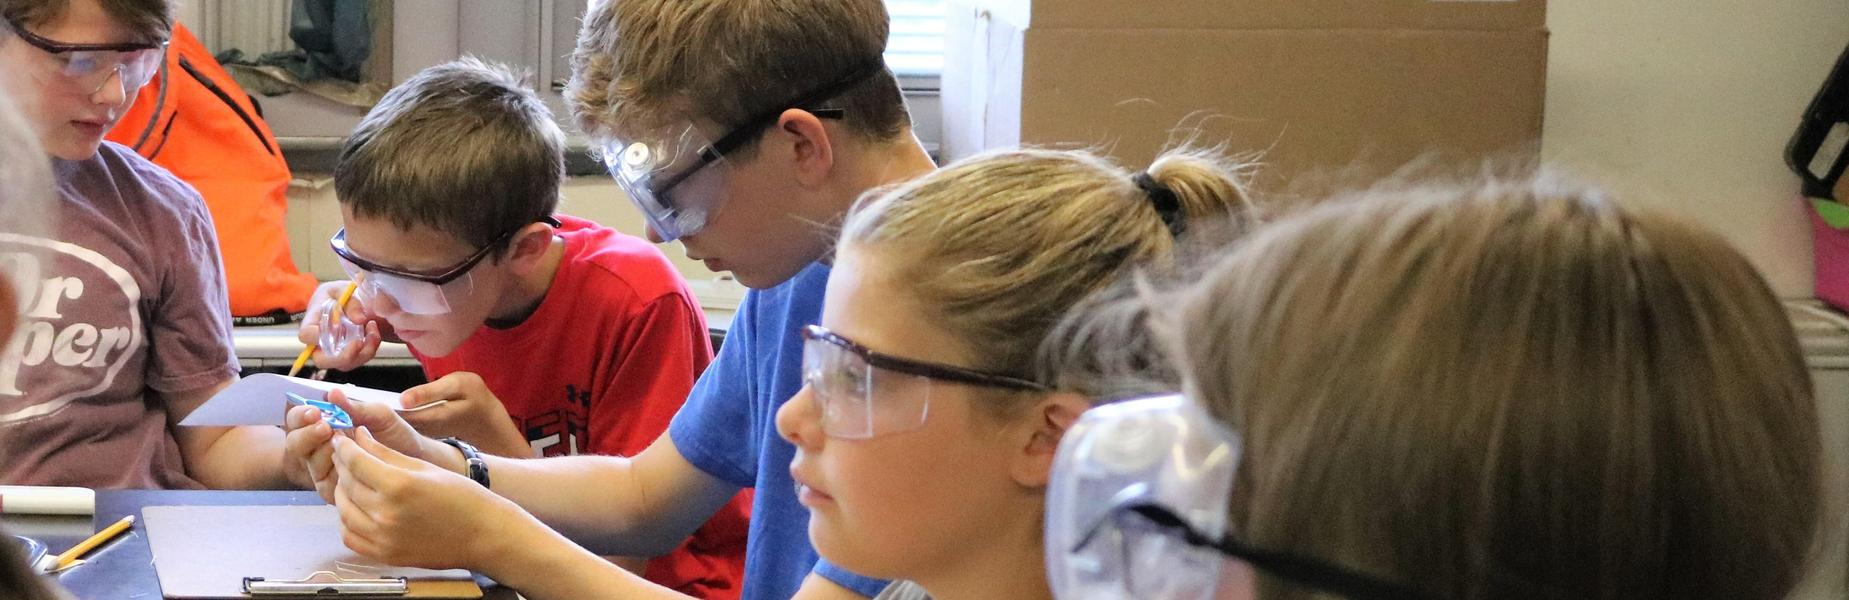 CSI sleuths study clues and evidence at STEM Camp.